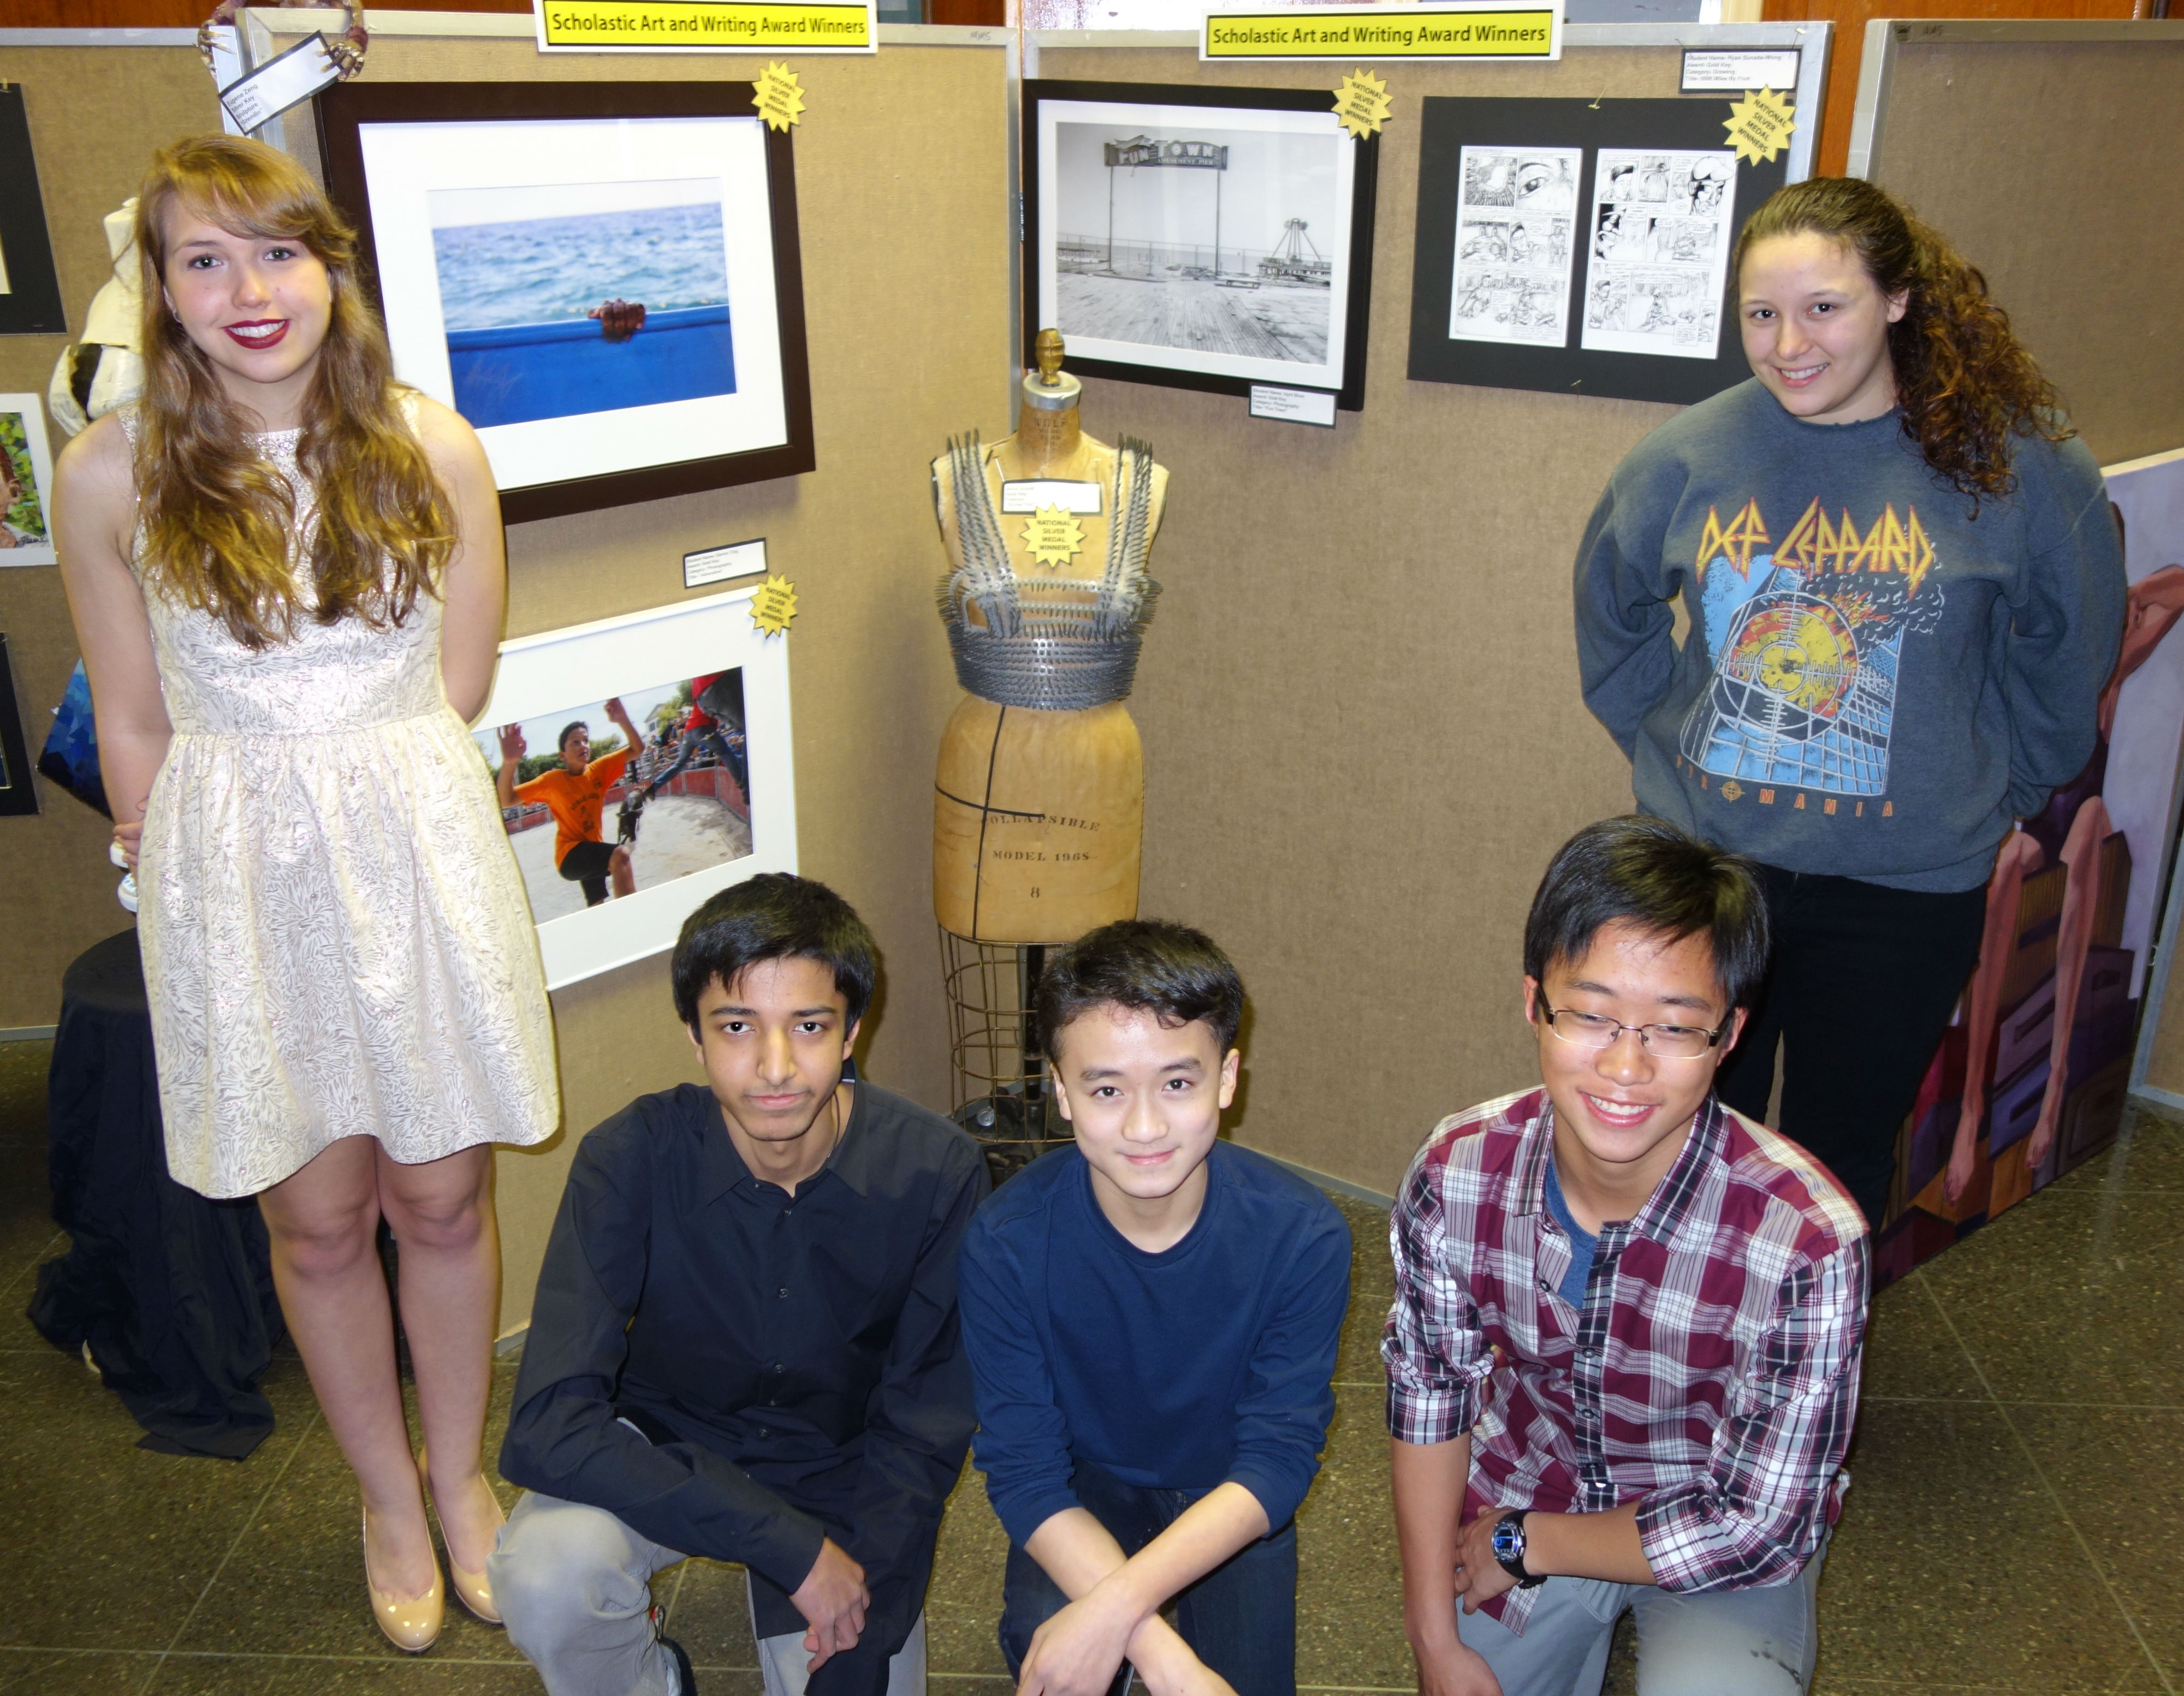 0212d9c434907641d14c_Millburn_National_Scholastic_Winners2014___Visual_Arts_.jpg